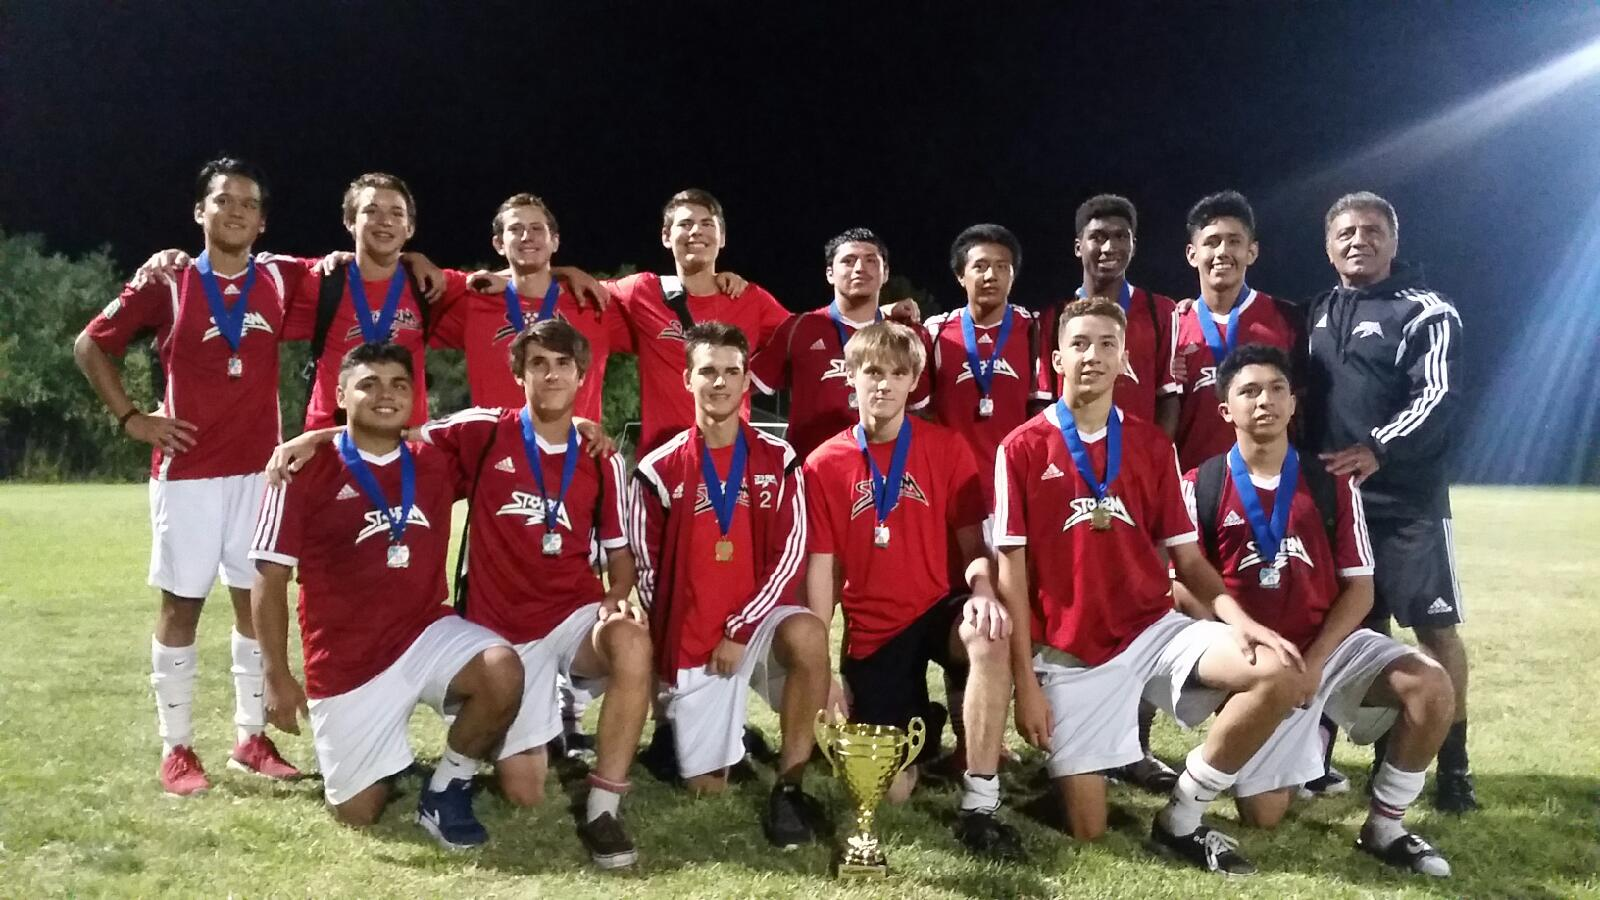 B1999 Collects Two Summer Tournament Championships